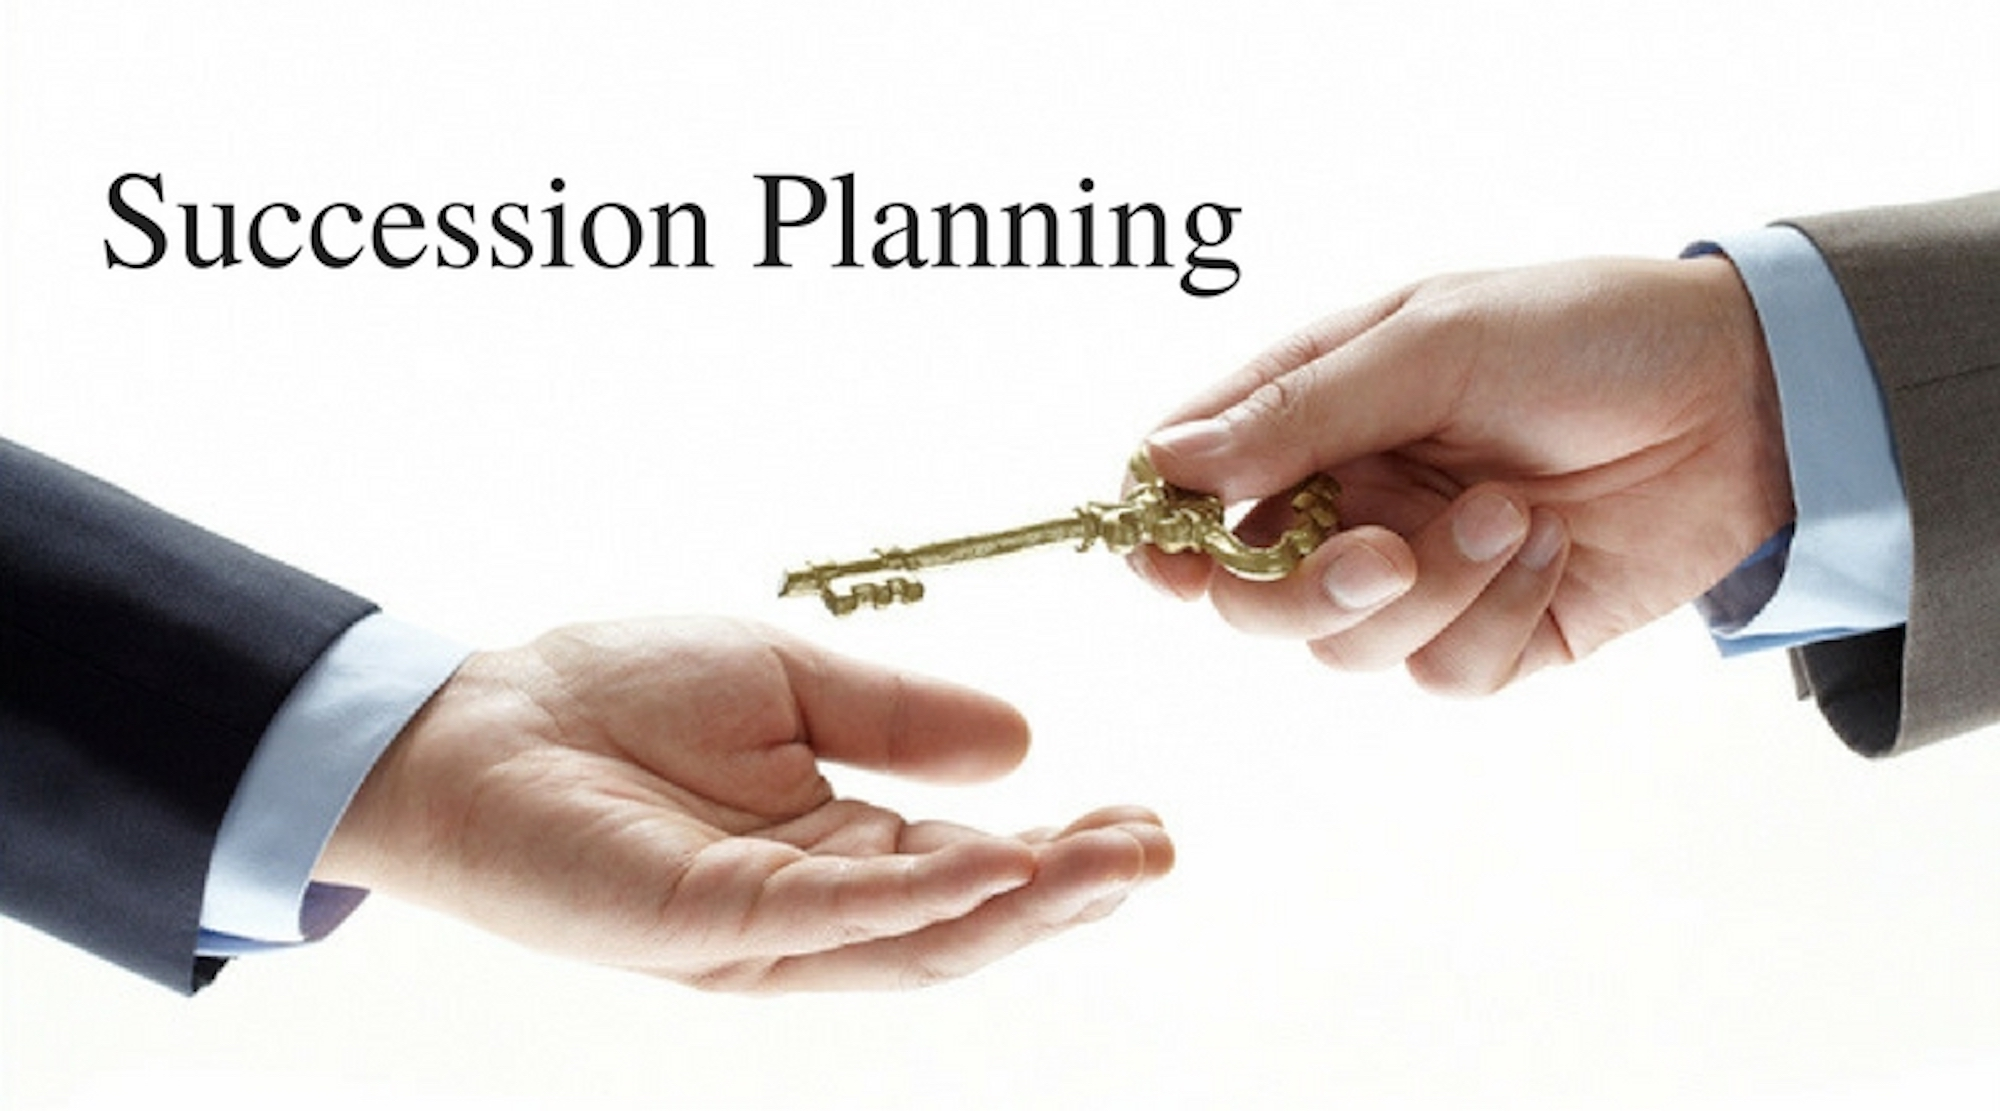 7 Steps To Successful Succession Planning Robert Half